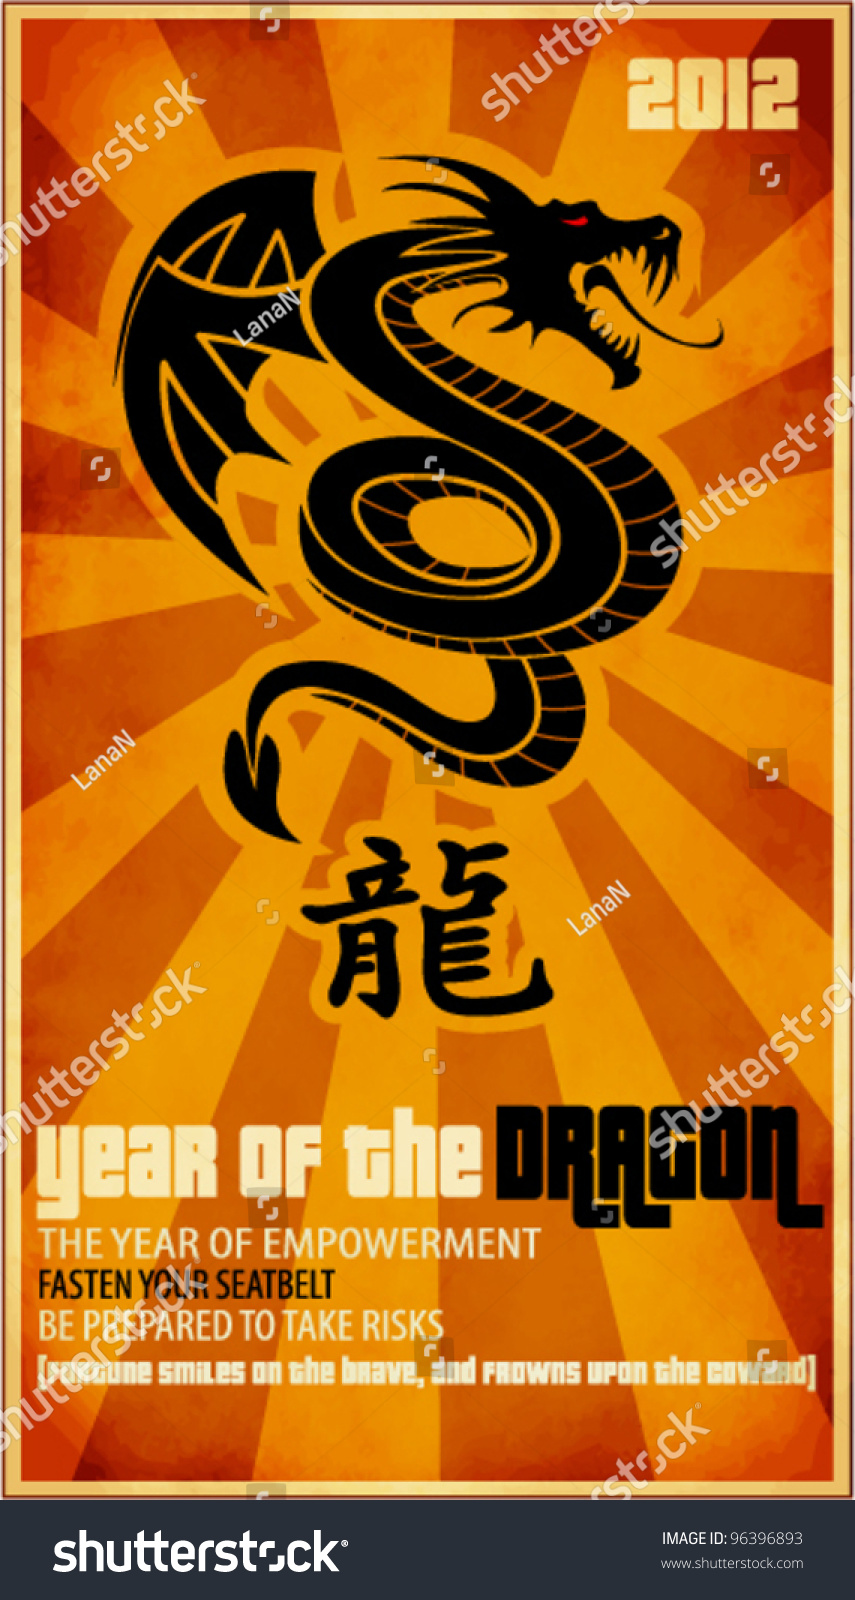 2012 year of the dragon chinese zodiac sign with a dragon coiled up and chinese character for. Black Bedroom Furniture Sets. Home Design Ideas